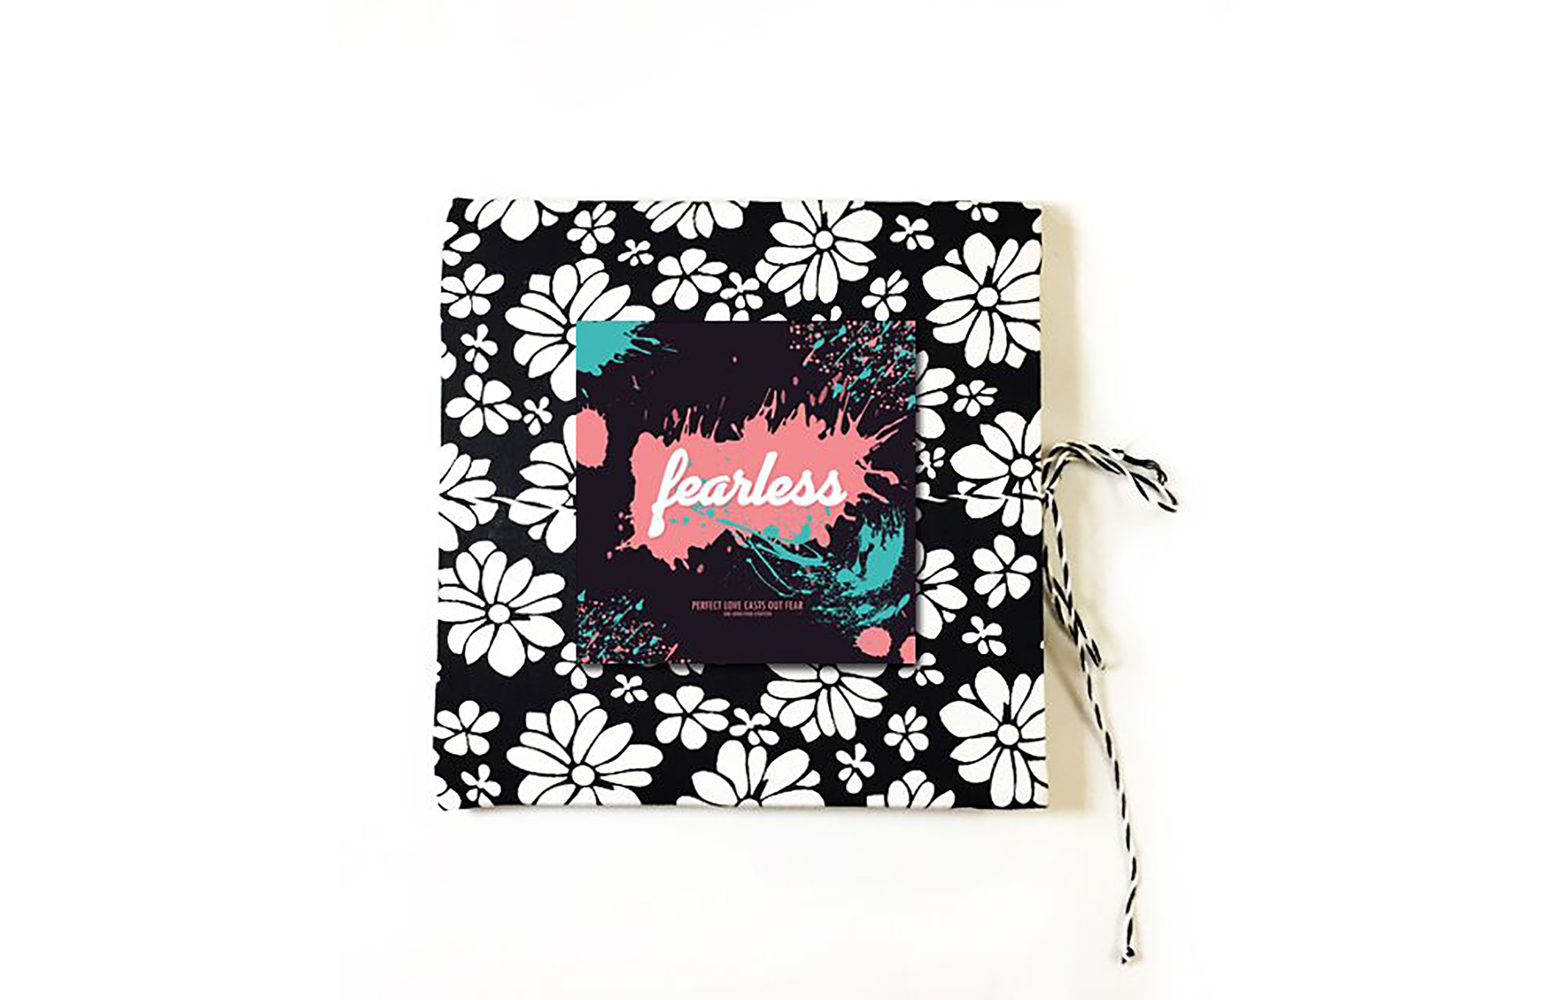 Fearless Cloth Journal | Square notebook | Sketchbook